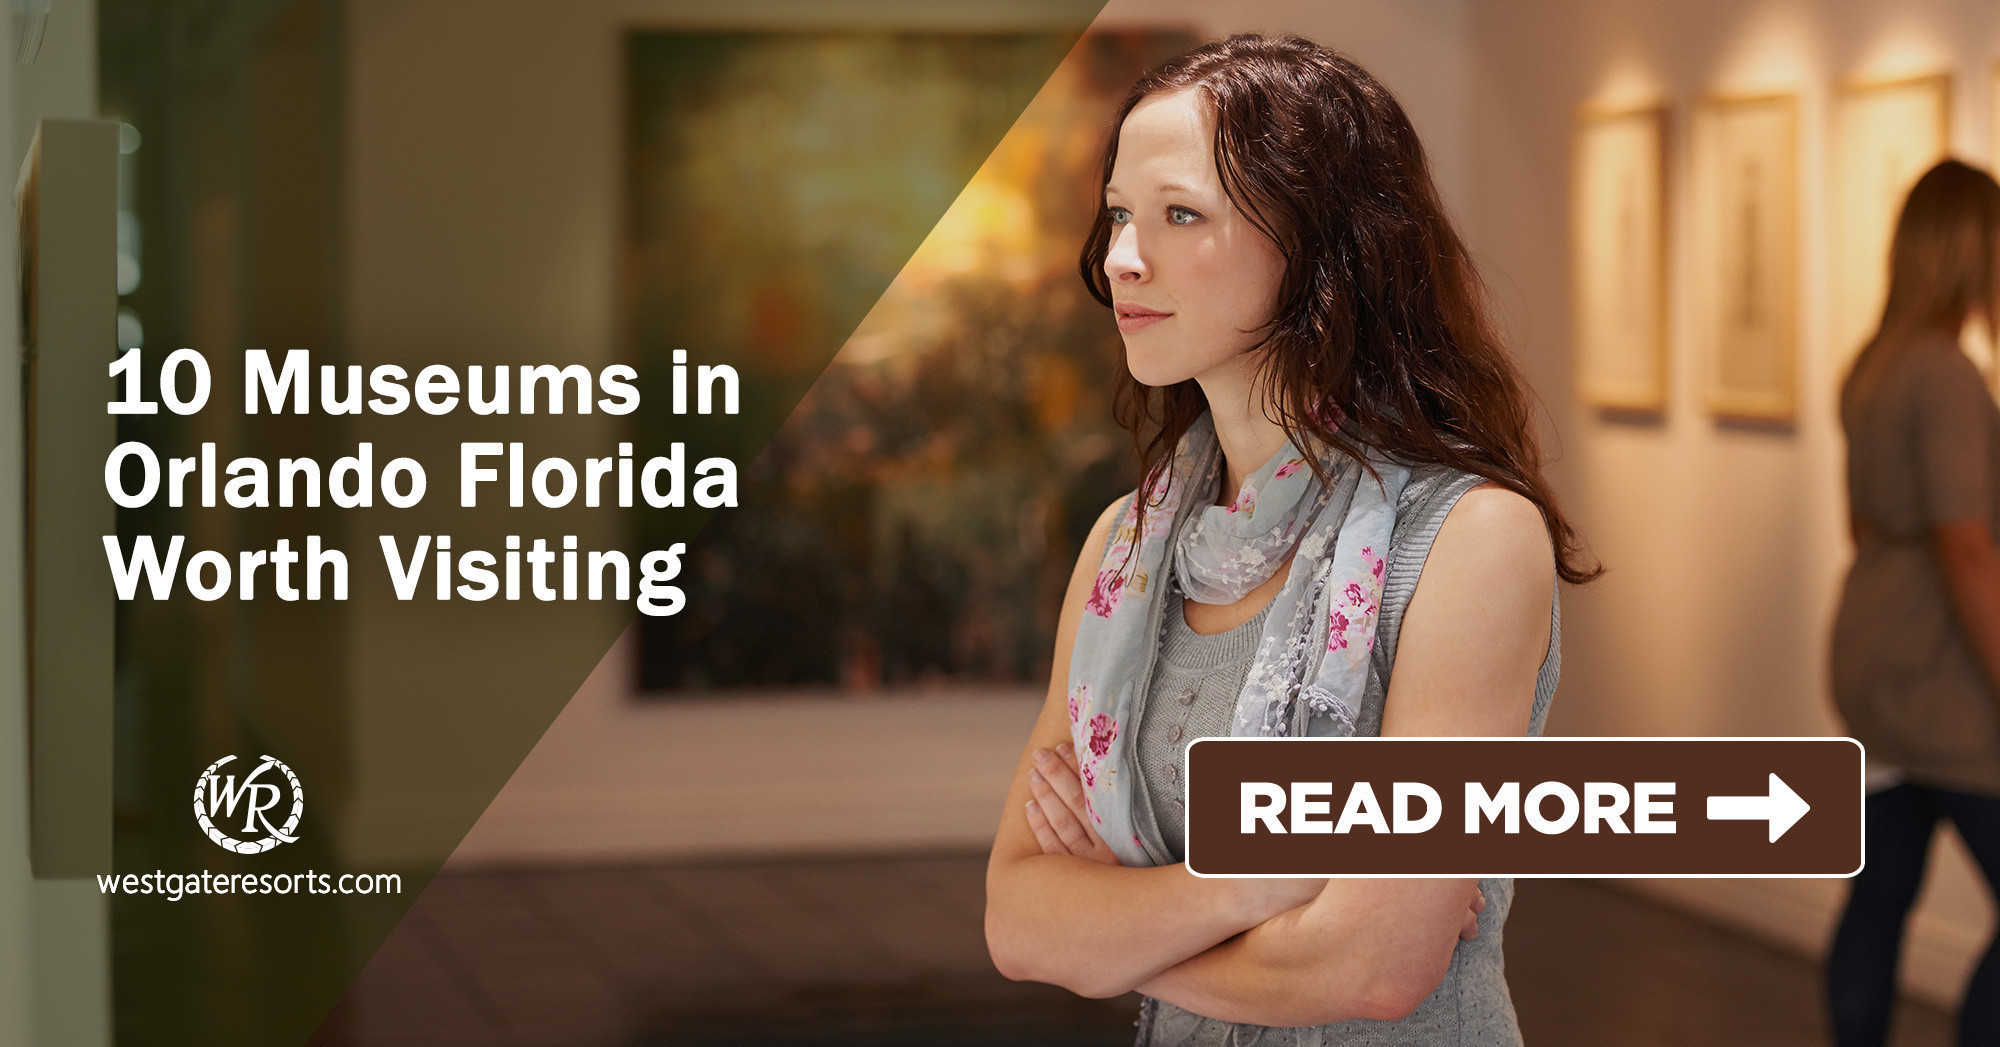 10 Museums in Orlando Florida Worth Visiting - Orlando Museums - Art Galleries